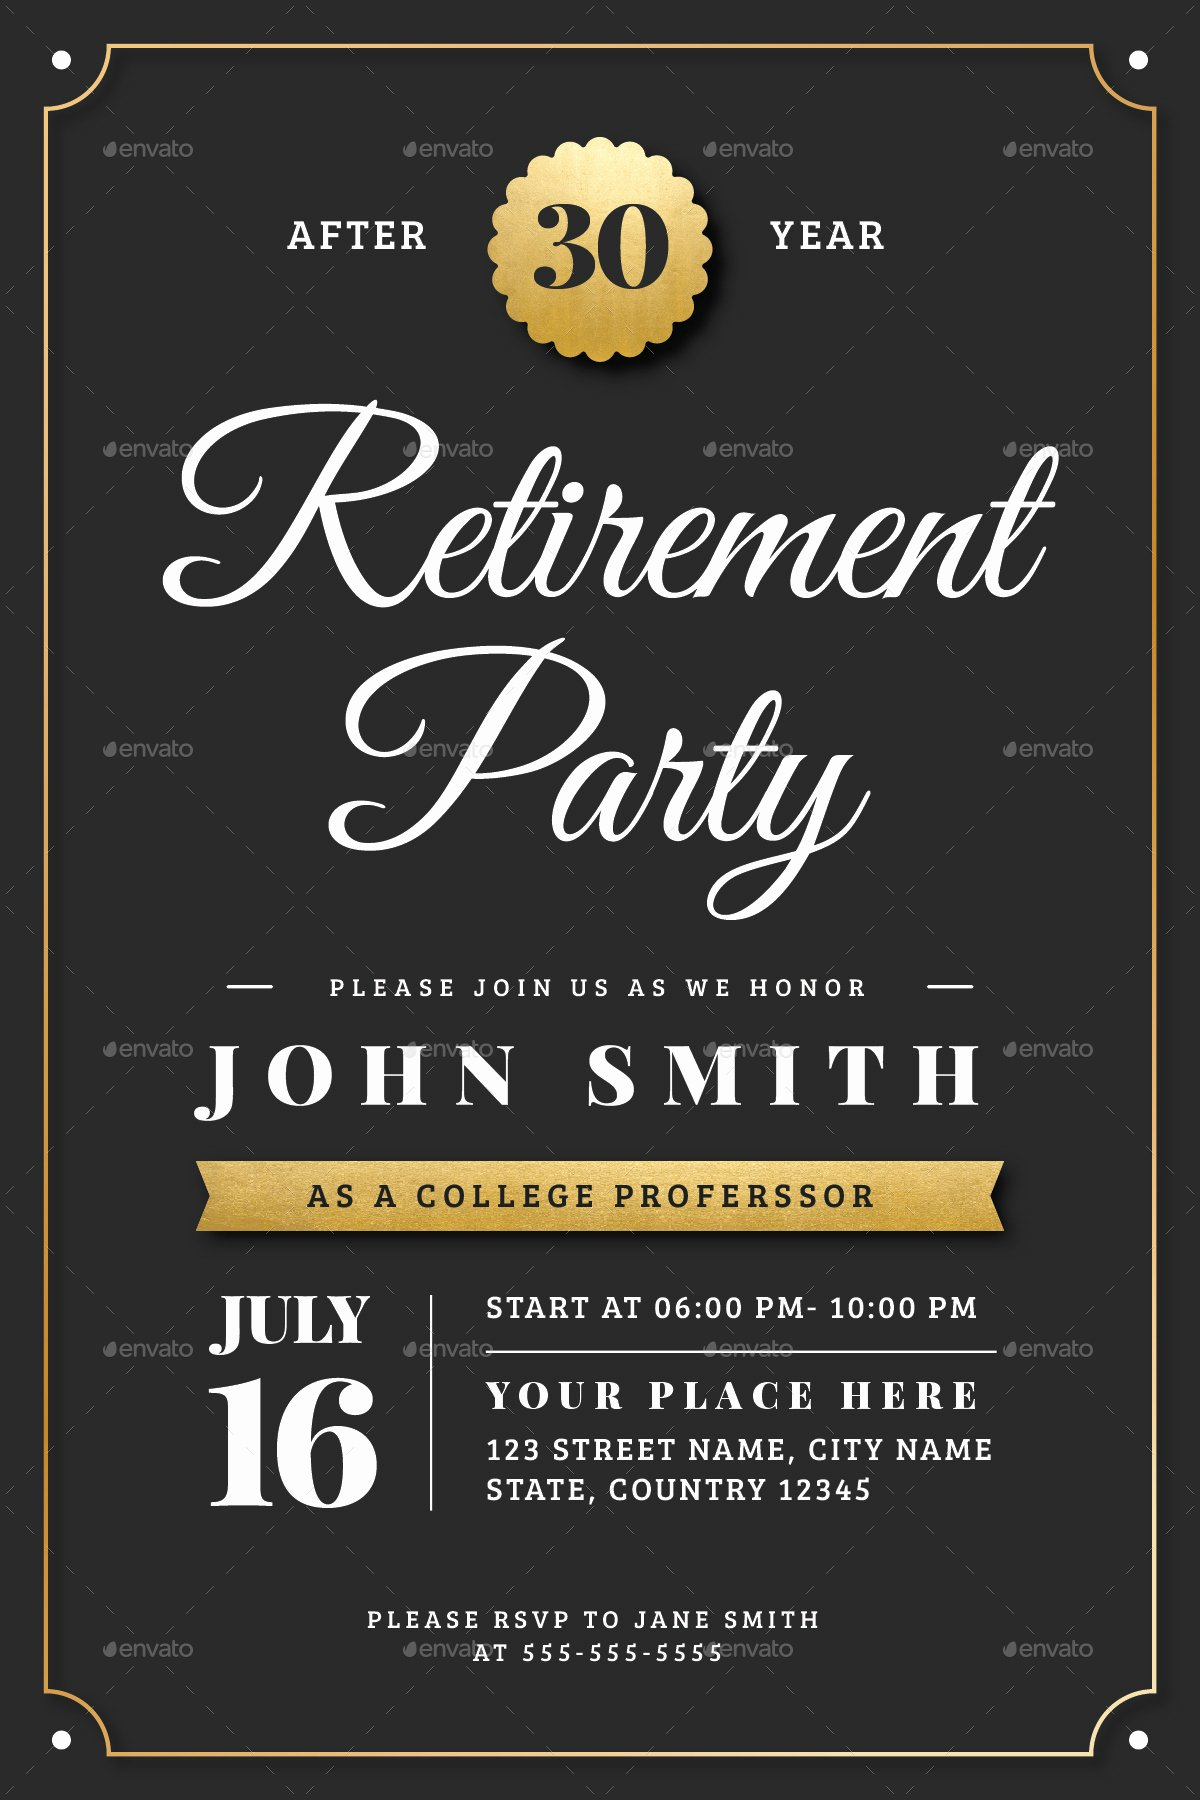 Retirement Party Invites Template Best Of Gold Retirement Invitation Flyer Templates by Vector